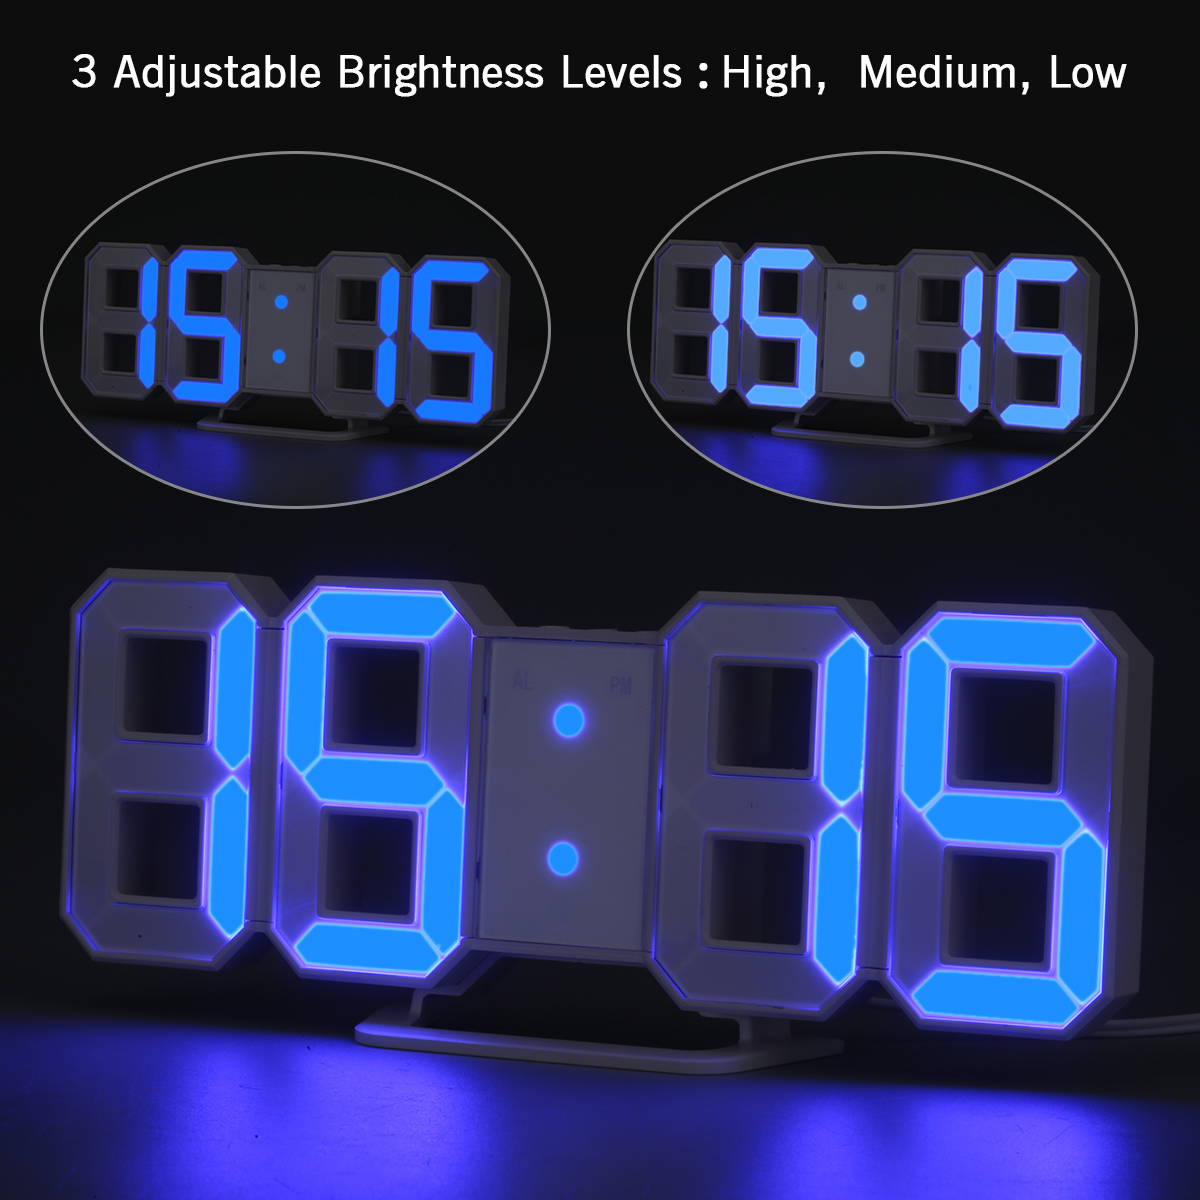 Blue Led Digit Large Display Alarm Clock With Brightness Dimmer Snooze Timer Usb Charge Dc And Battery Backup Digits Table Wall